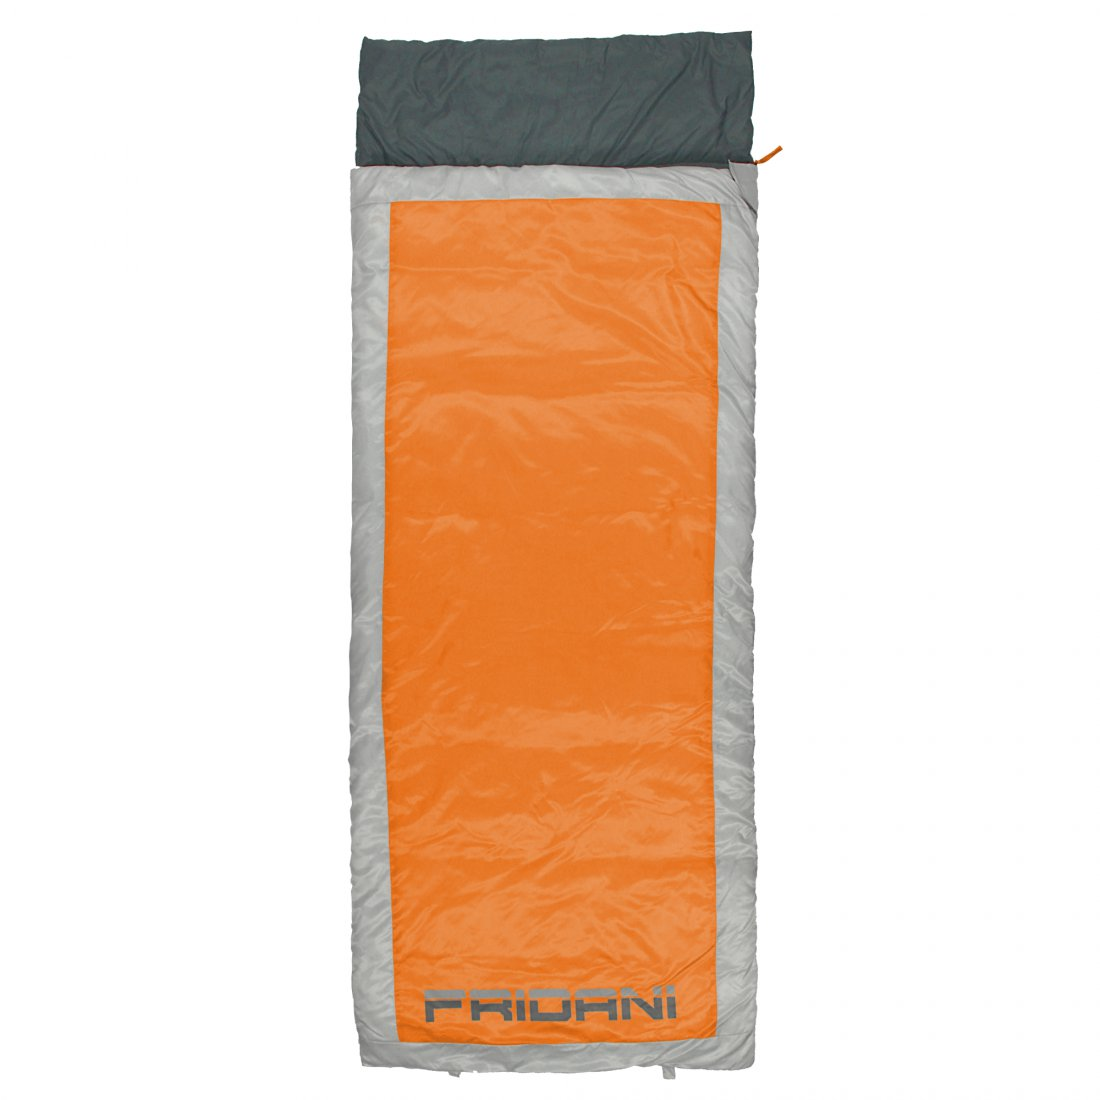 Fridani Qo 225s Blanket Sleeping Bag 225x85cm 1800 G 7 C Ext 5 Lim 10 Comf Bags Rectangular